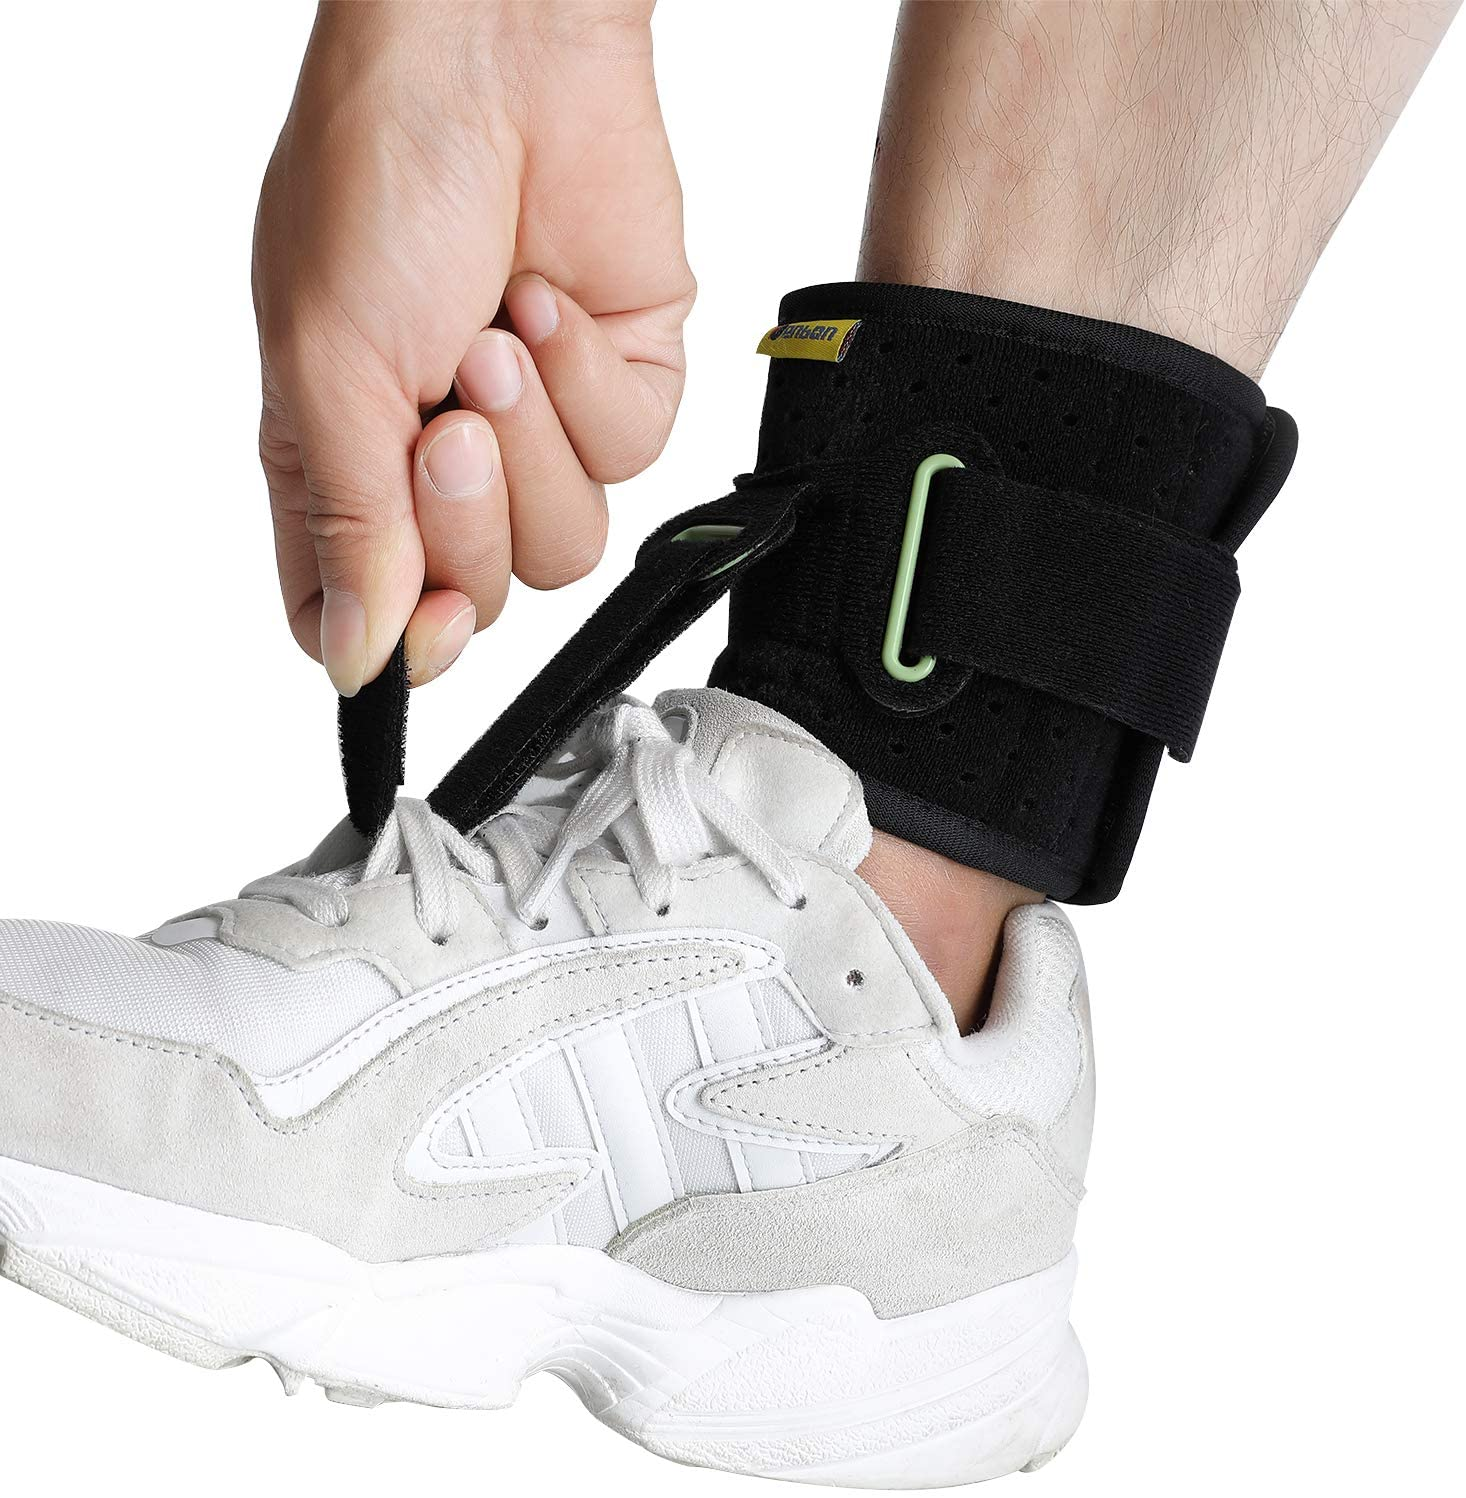 Tenbon Adjustable Ankle foot Support Brace Plantar Fasciitis Foot Drop Foot Cramp Prevent Foot Stabilizer Pain Relief Guard Stra